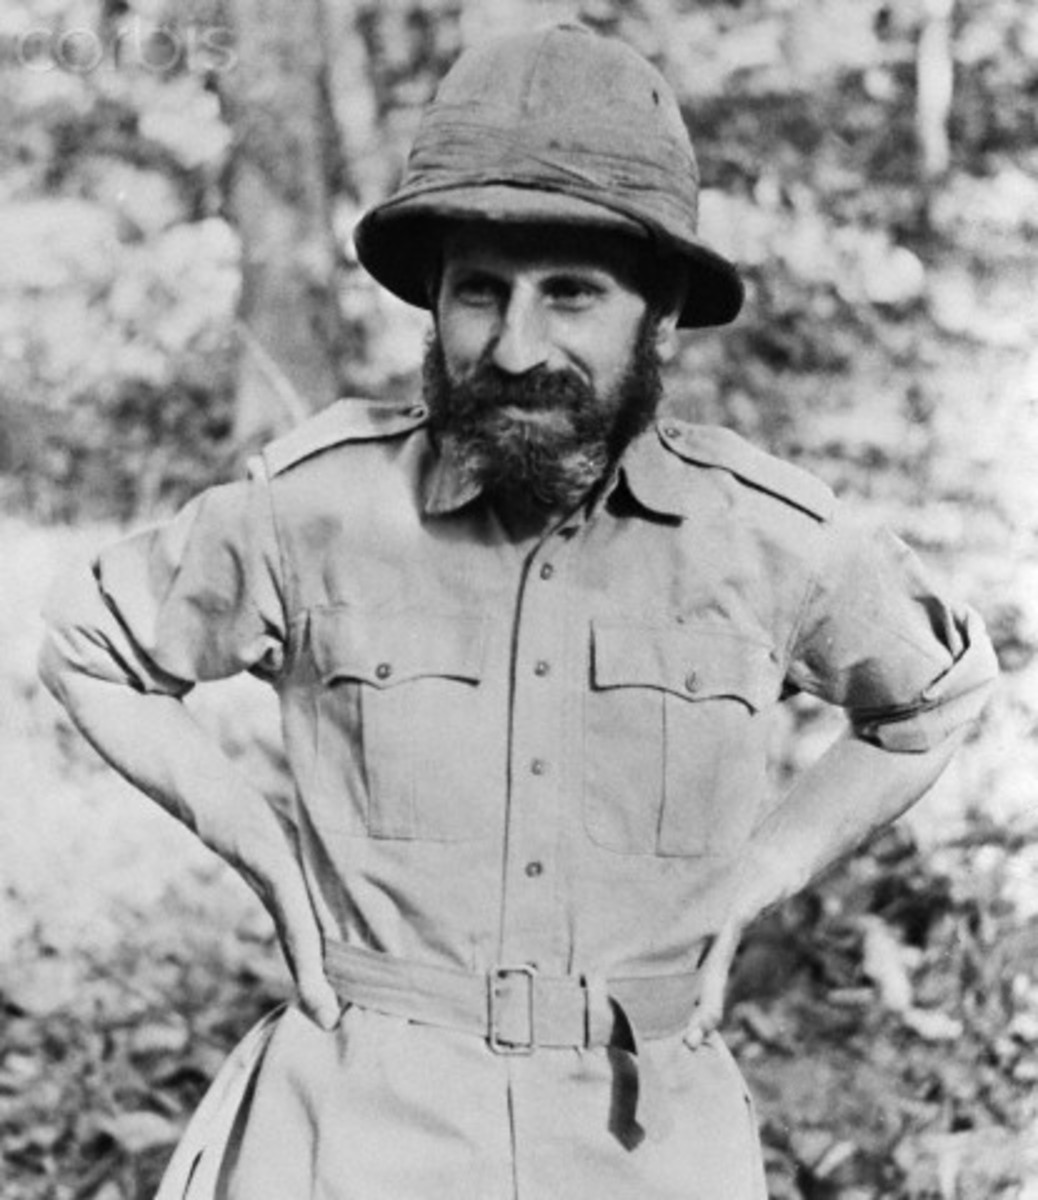 Spectres of the Burma Jungle, Orde Charles Wingate and the Chindits